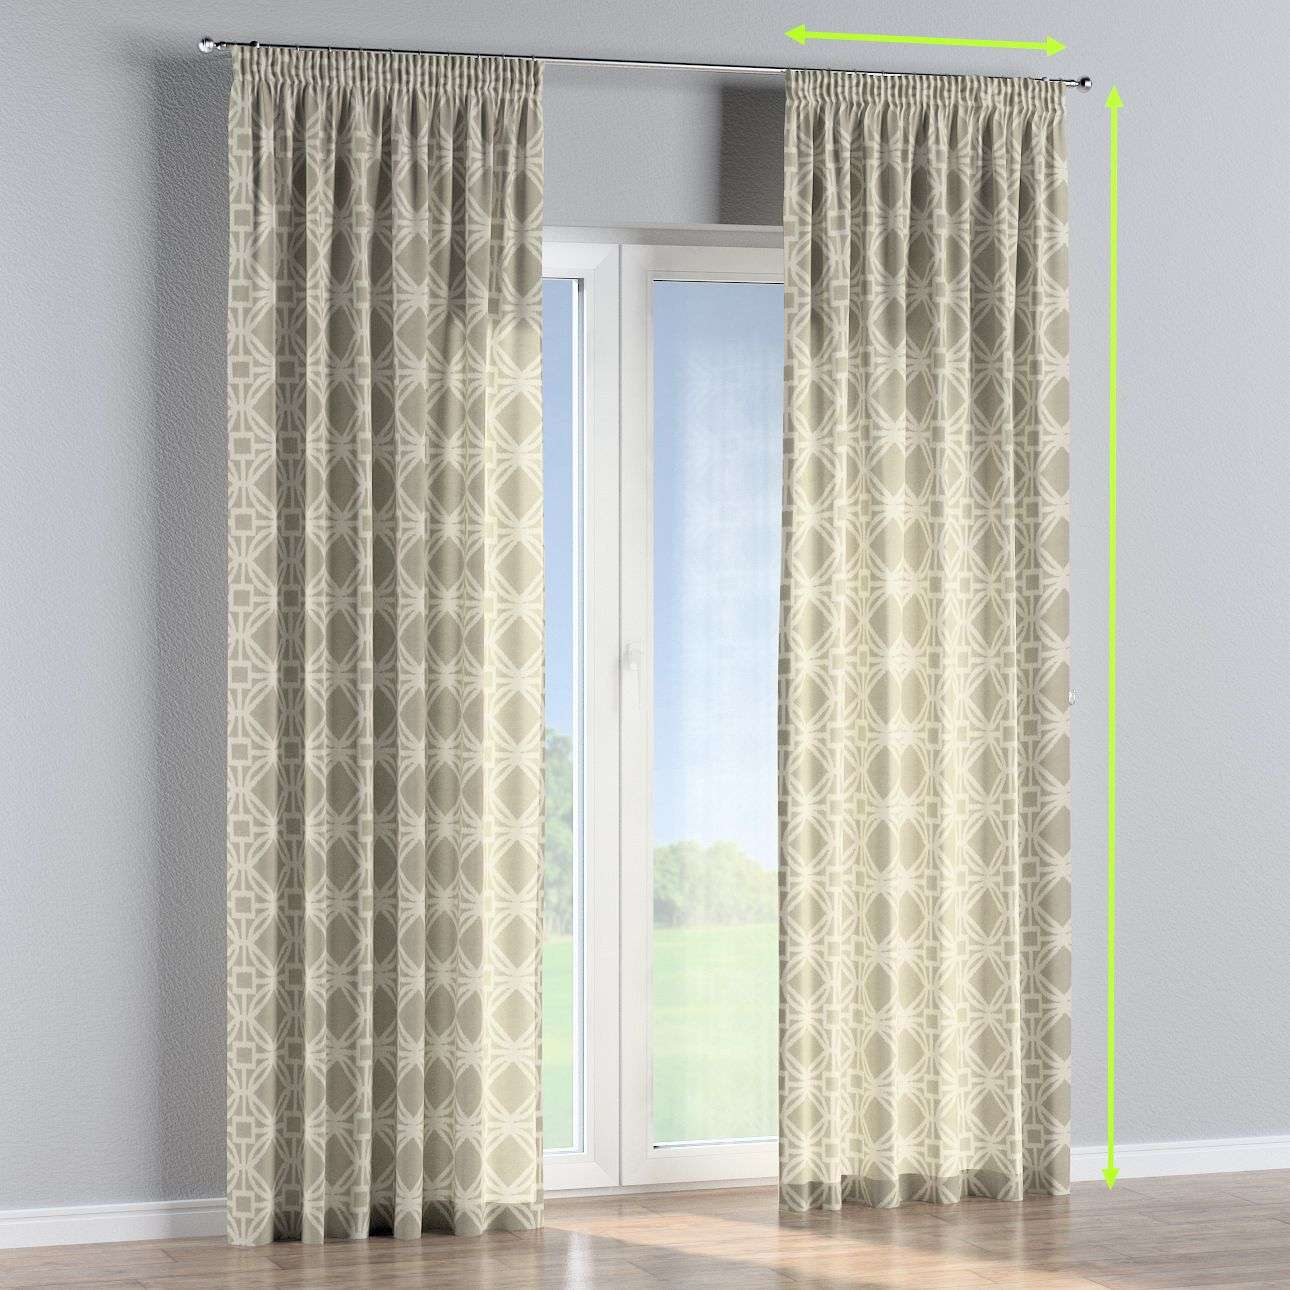 Pencil pleat curtains in collection Comics/Geometrical, fabric: 141-56